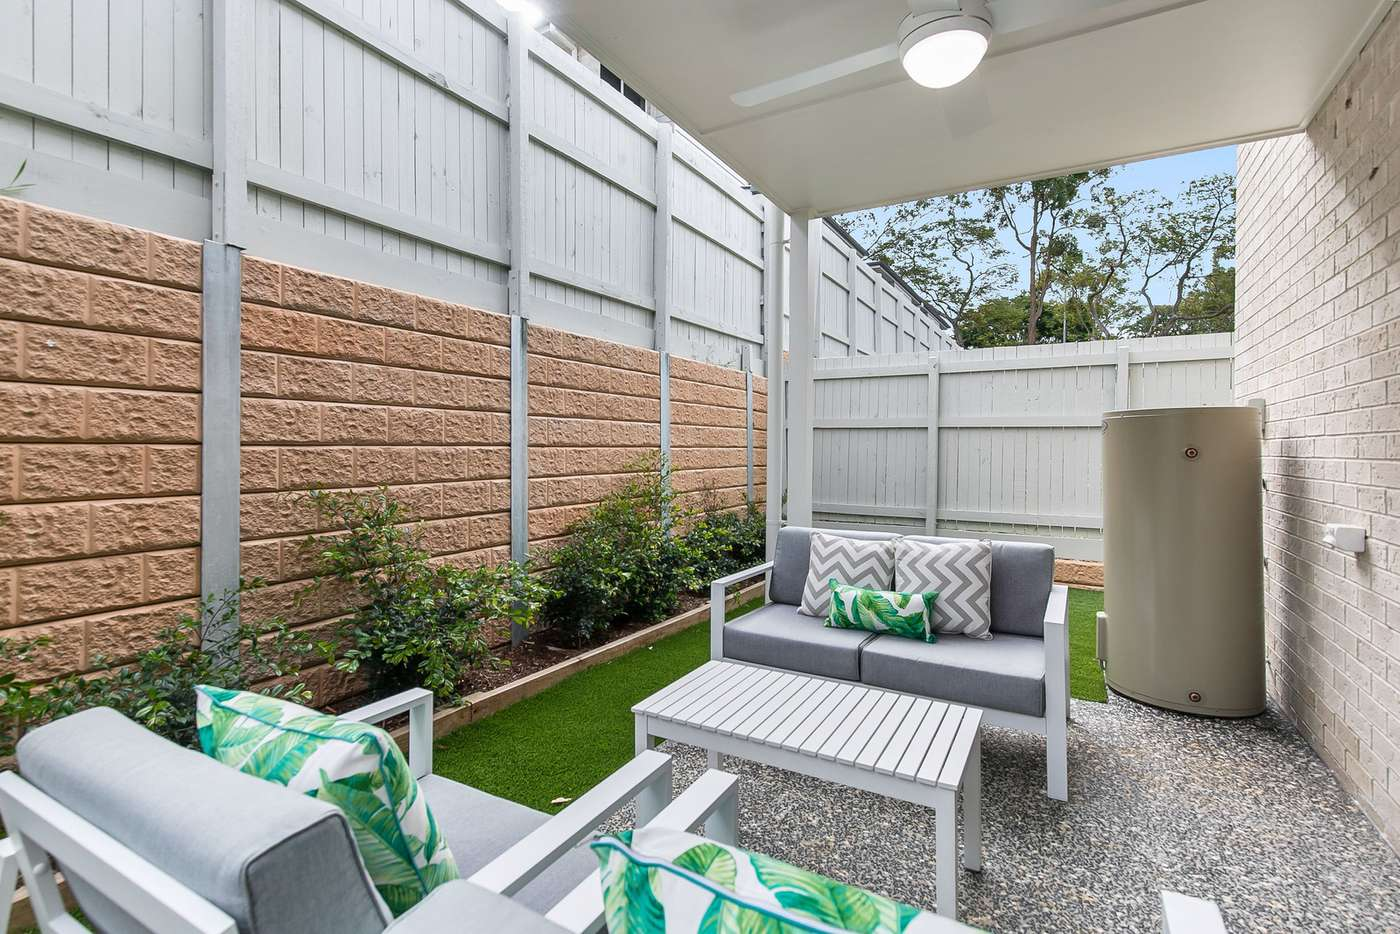 Seventh view of Homely townhouse listing, 5-9 Victor Street, Birkdale QLD 4159